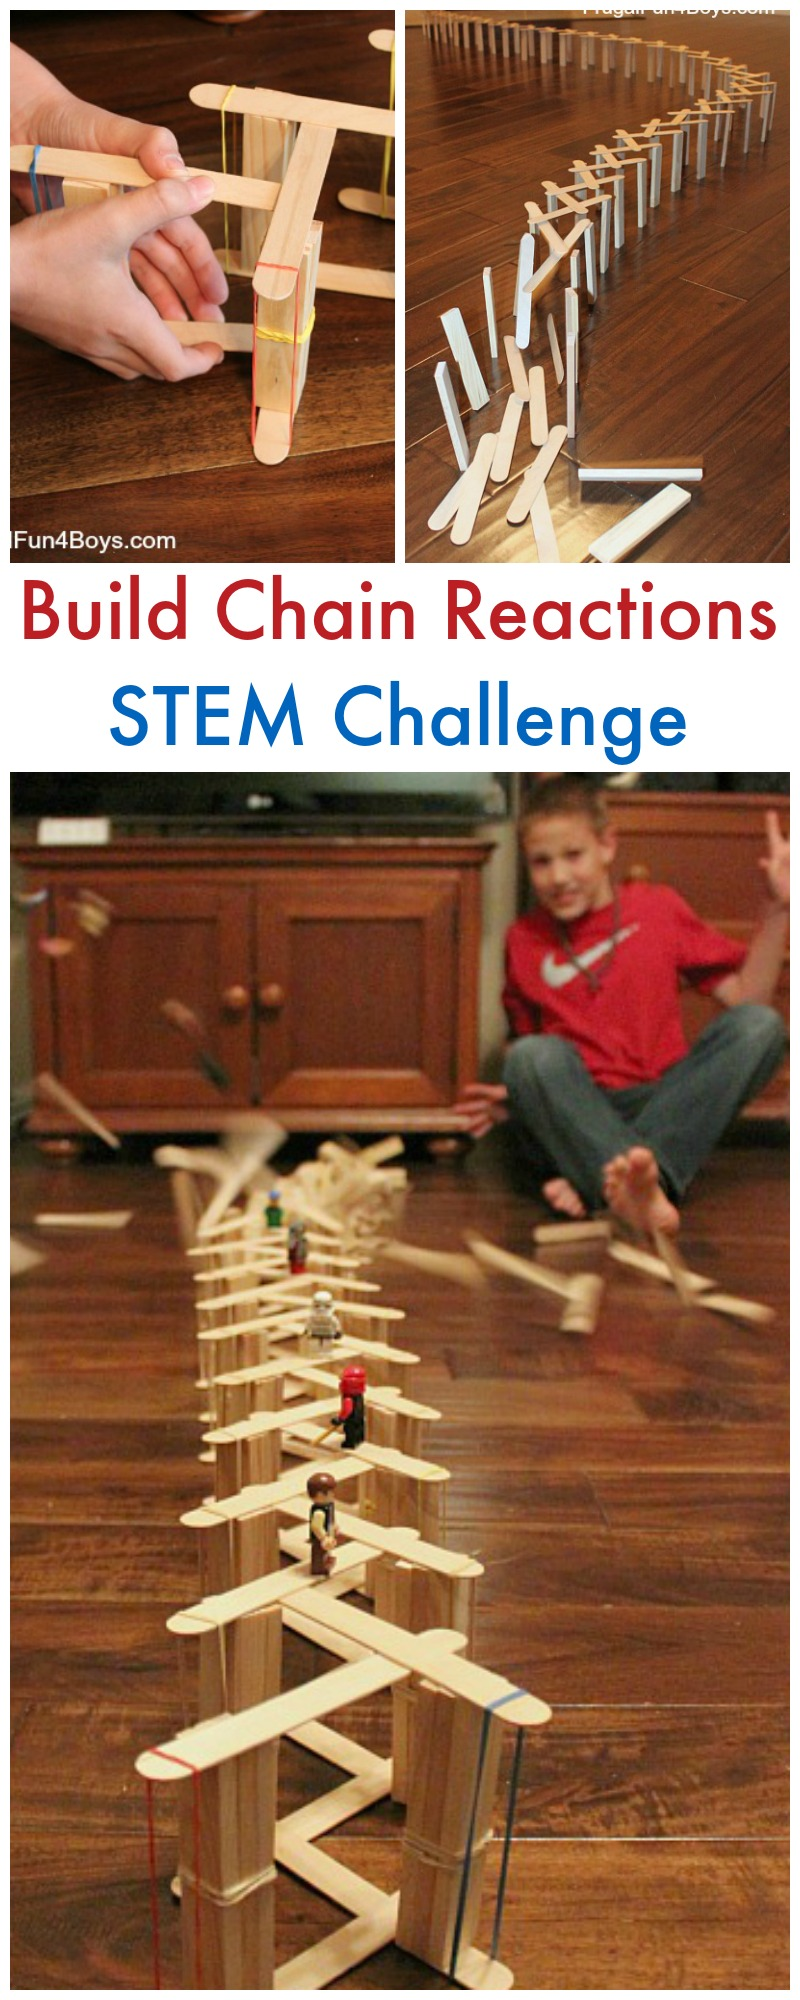 Build Chain Reactions with Craft Sticks